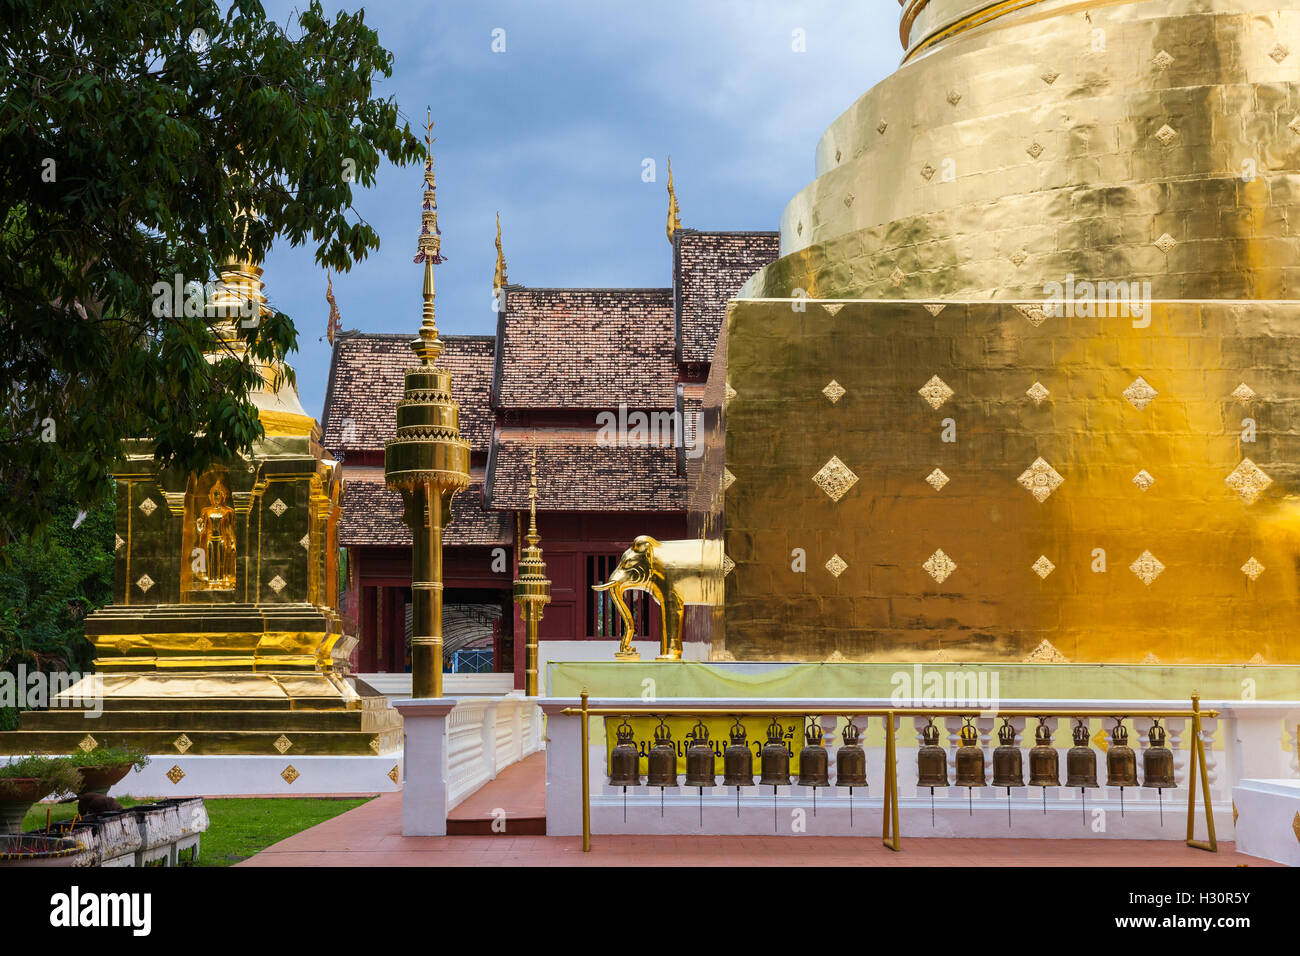 Dusk View of the Wat Phra Singh temple, the most revered temple in Chiang Mai, Thailand. - Stock Image